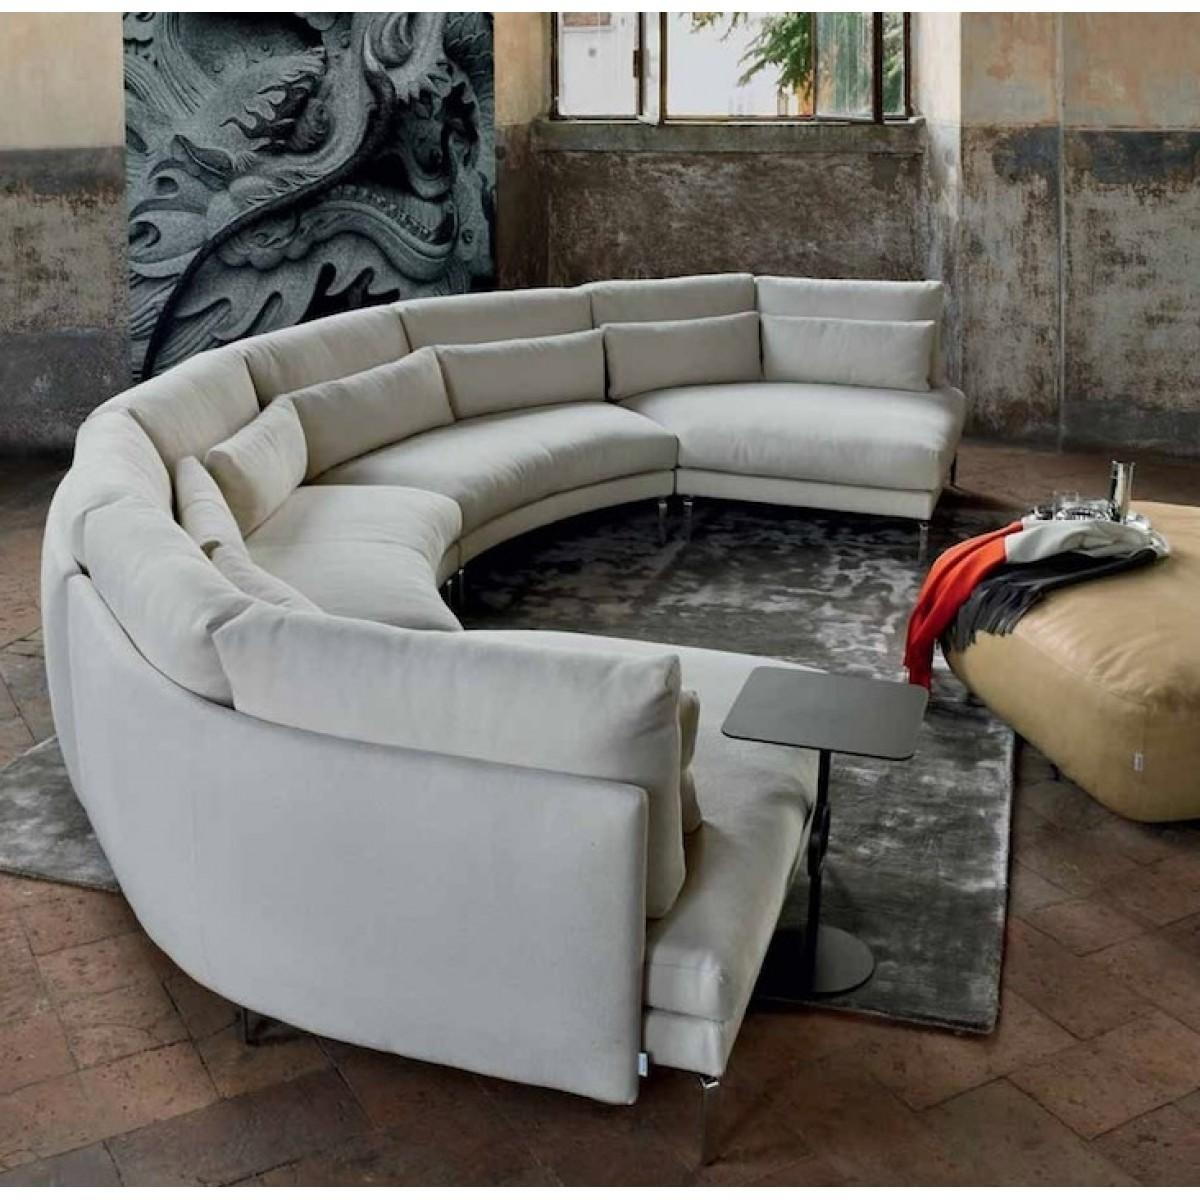 Sofa Design Ideas: Half Semi Circular Sofa Tables In Sale With Throughout Semicircular Sofa (Image 17 of 20)